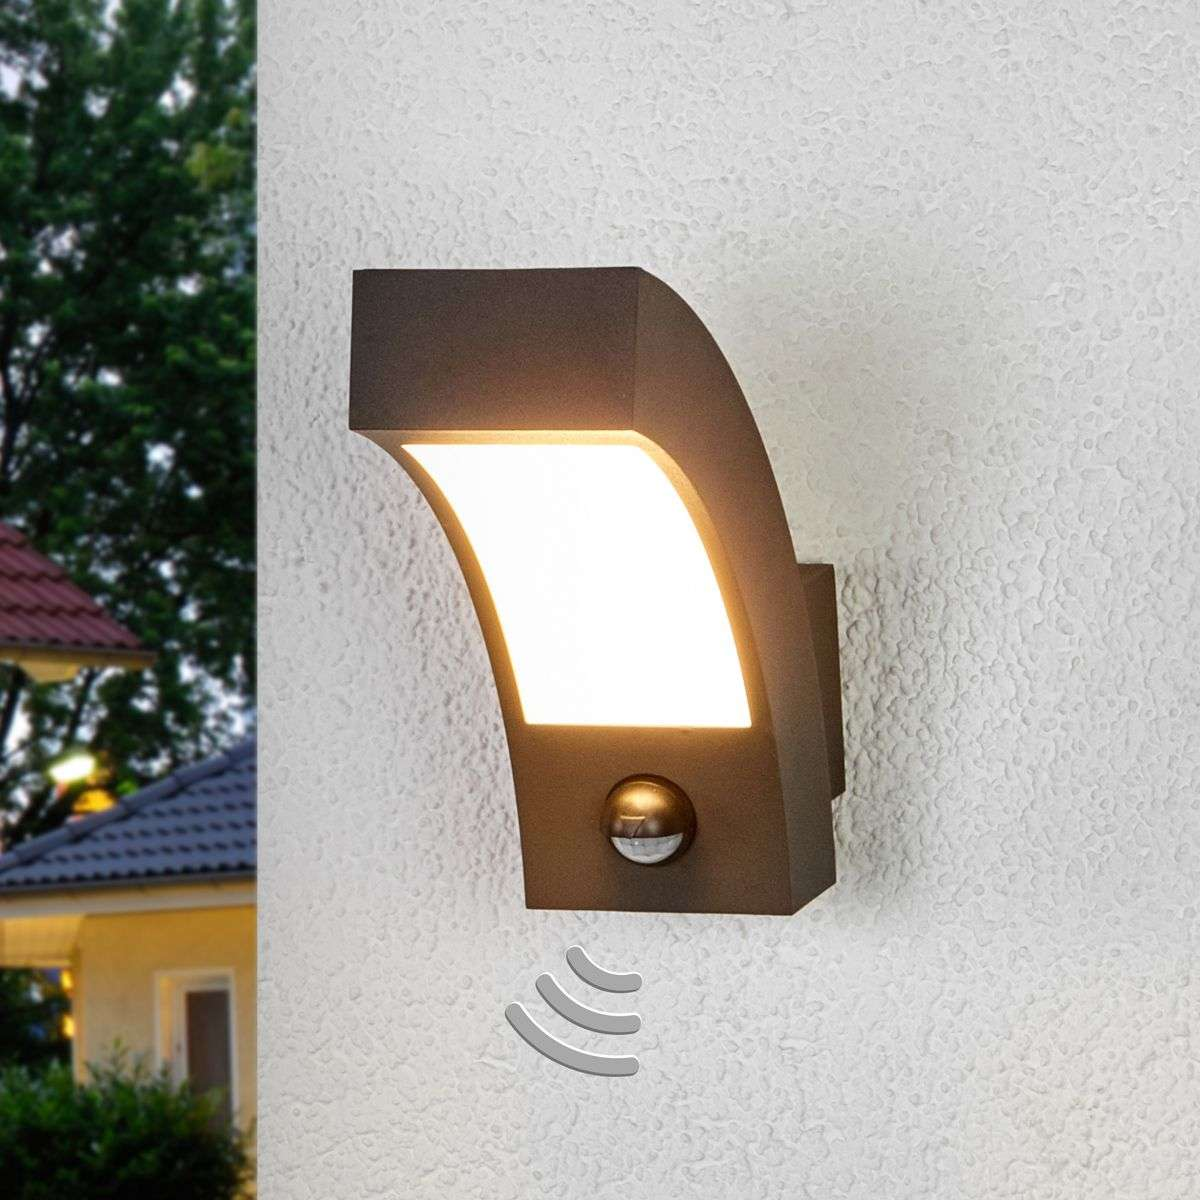 Lennik LED Exterior Wall Lamp with Motion Detector | Lights.co.uk